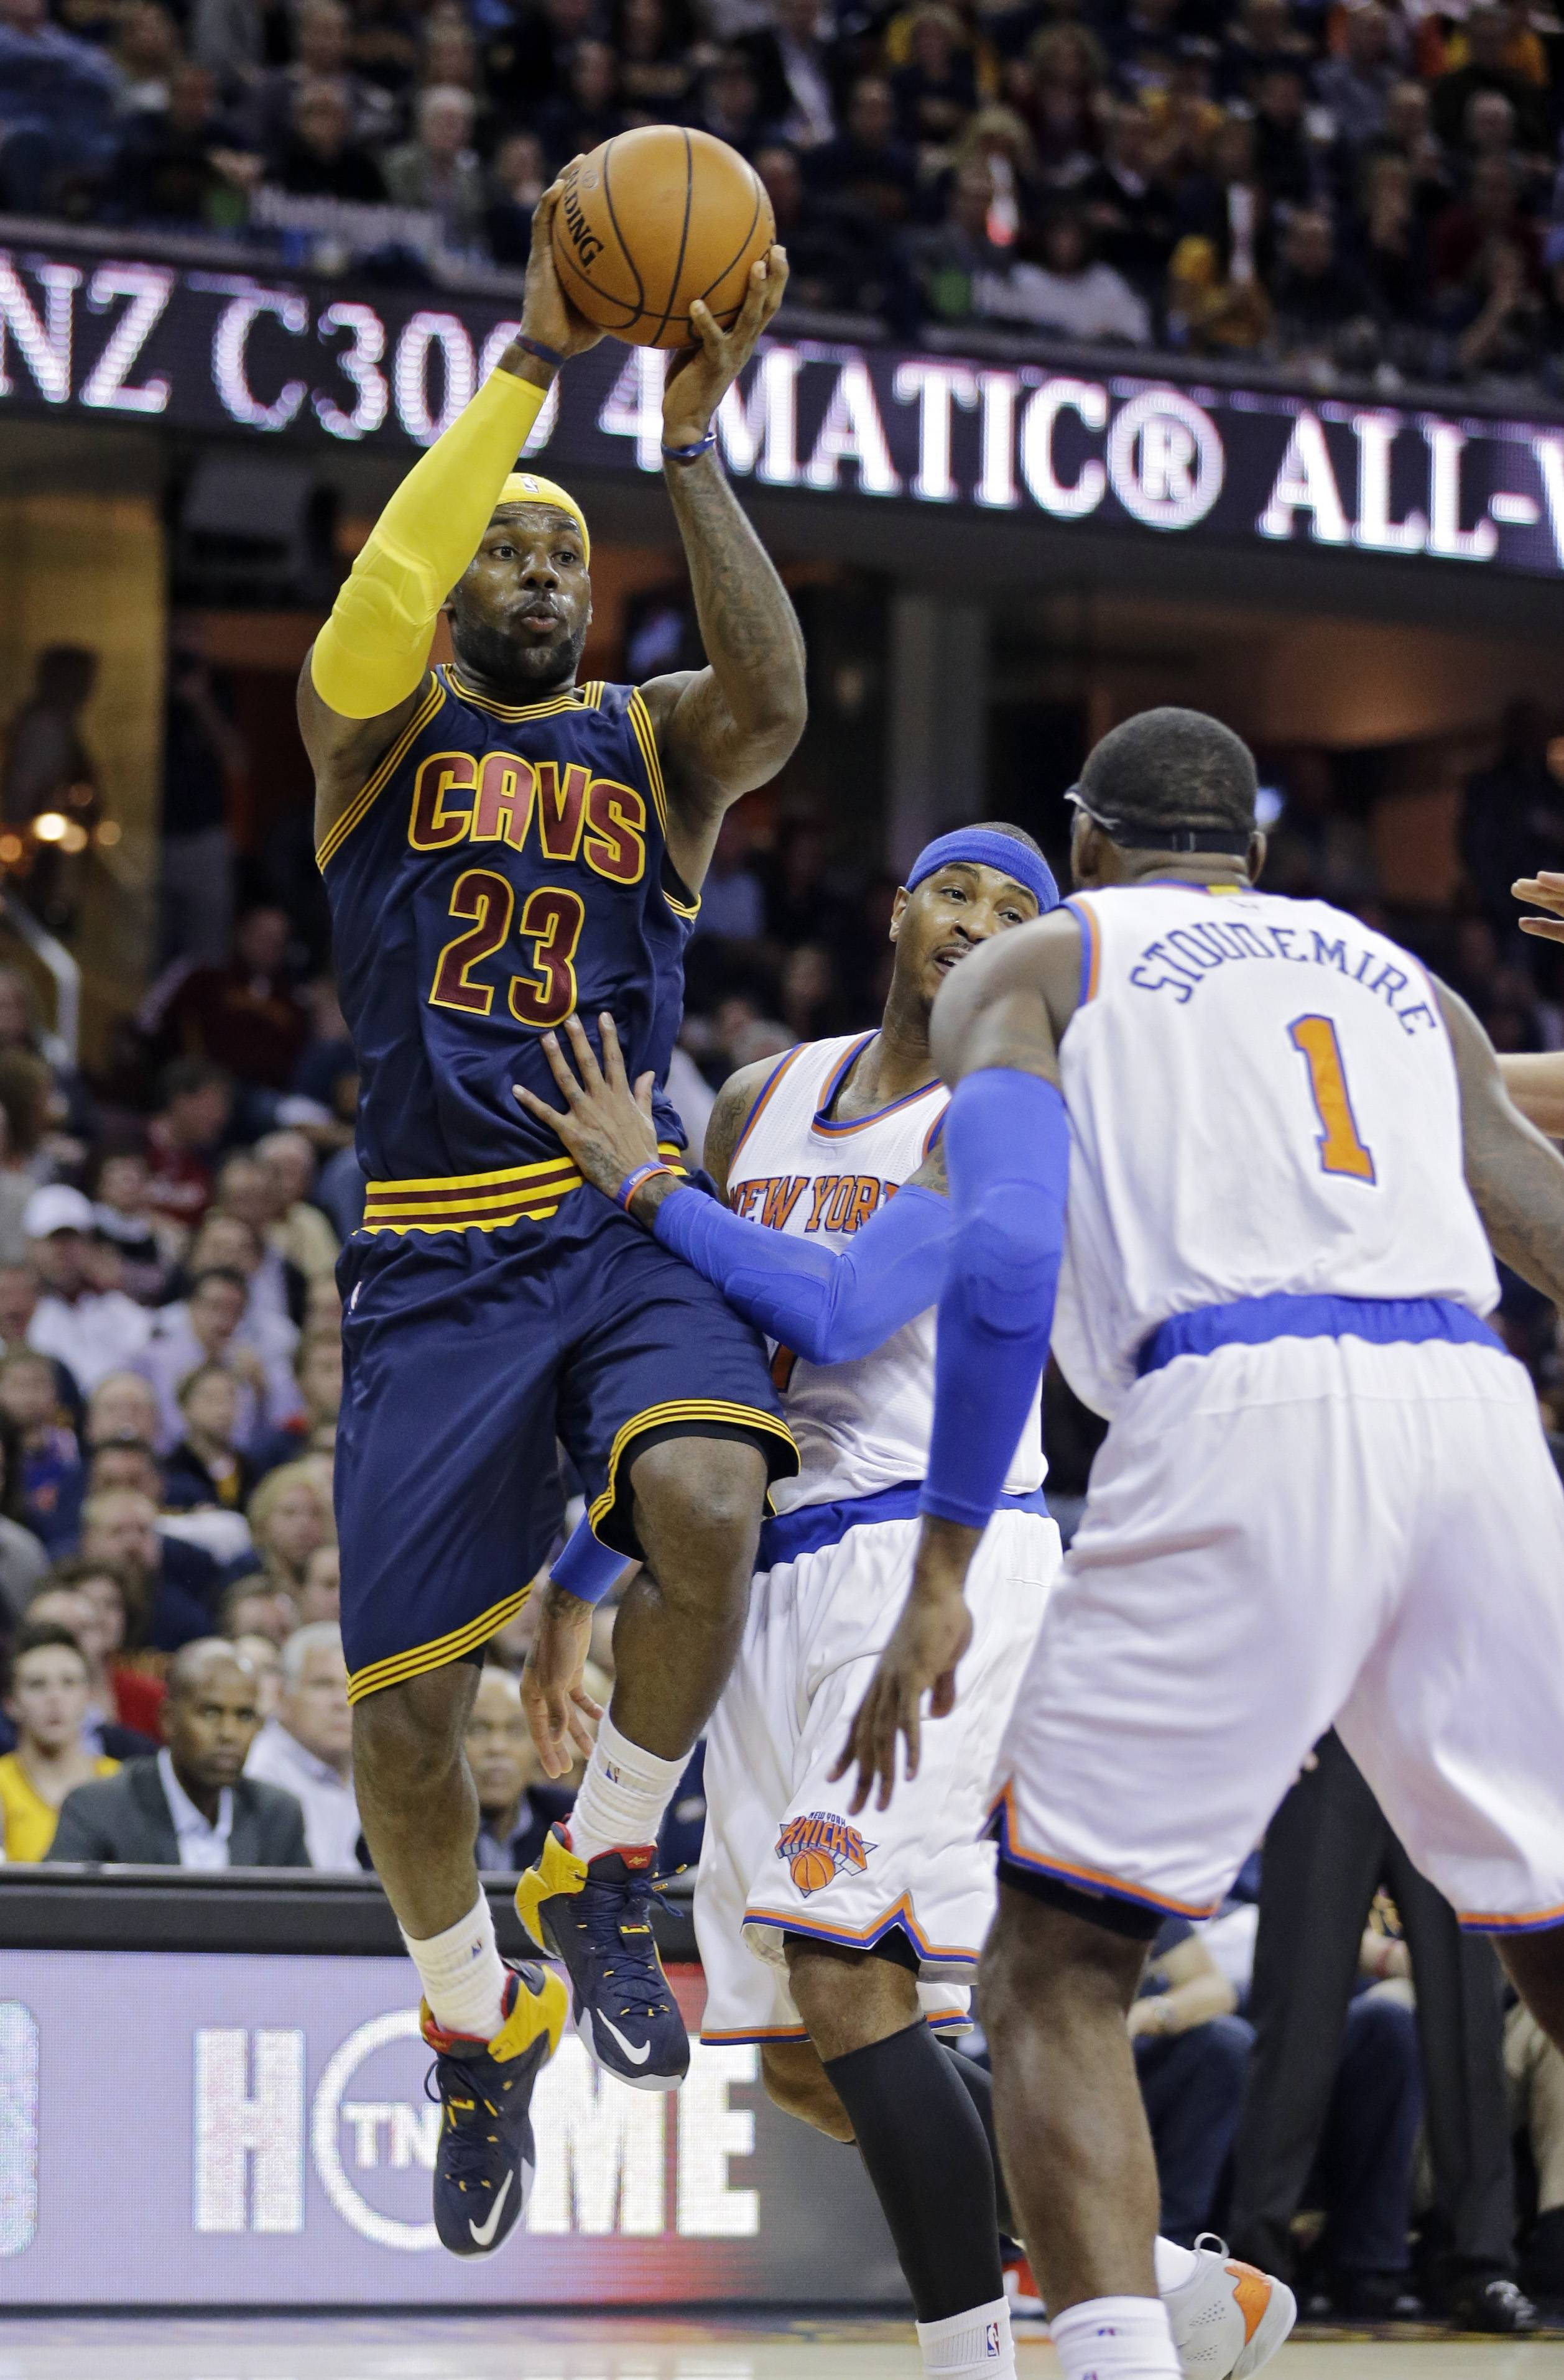 Cleveland Cavaliers' LeBron James (23) looks to pass against New York Knicks' Carmelo Anthony and Amar'e Stoudemire (1) in the first quarter of an NBA basketball game Thursday, Oct. 30, 2014, in Cleveland.